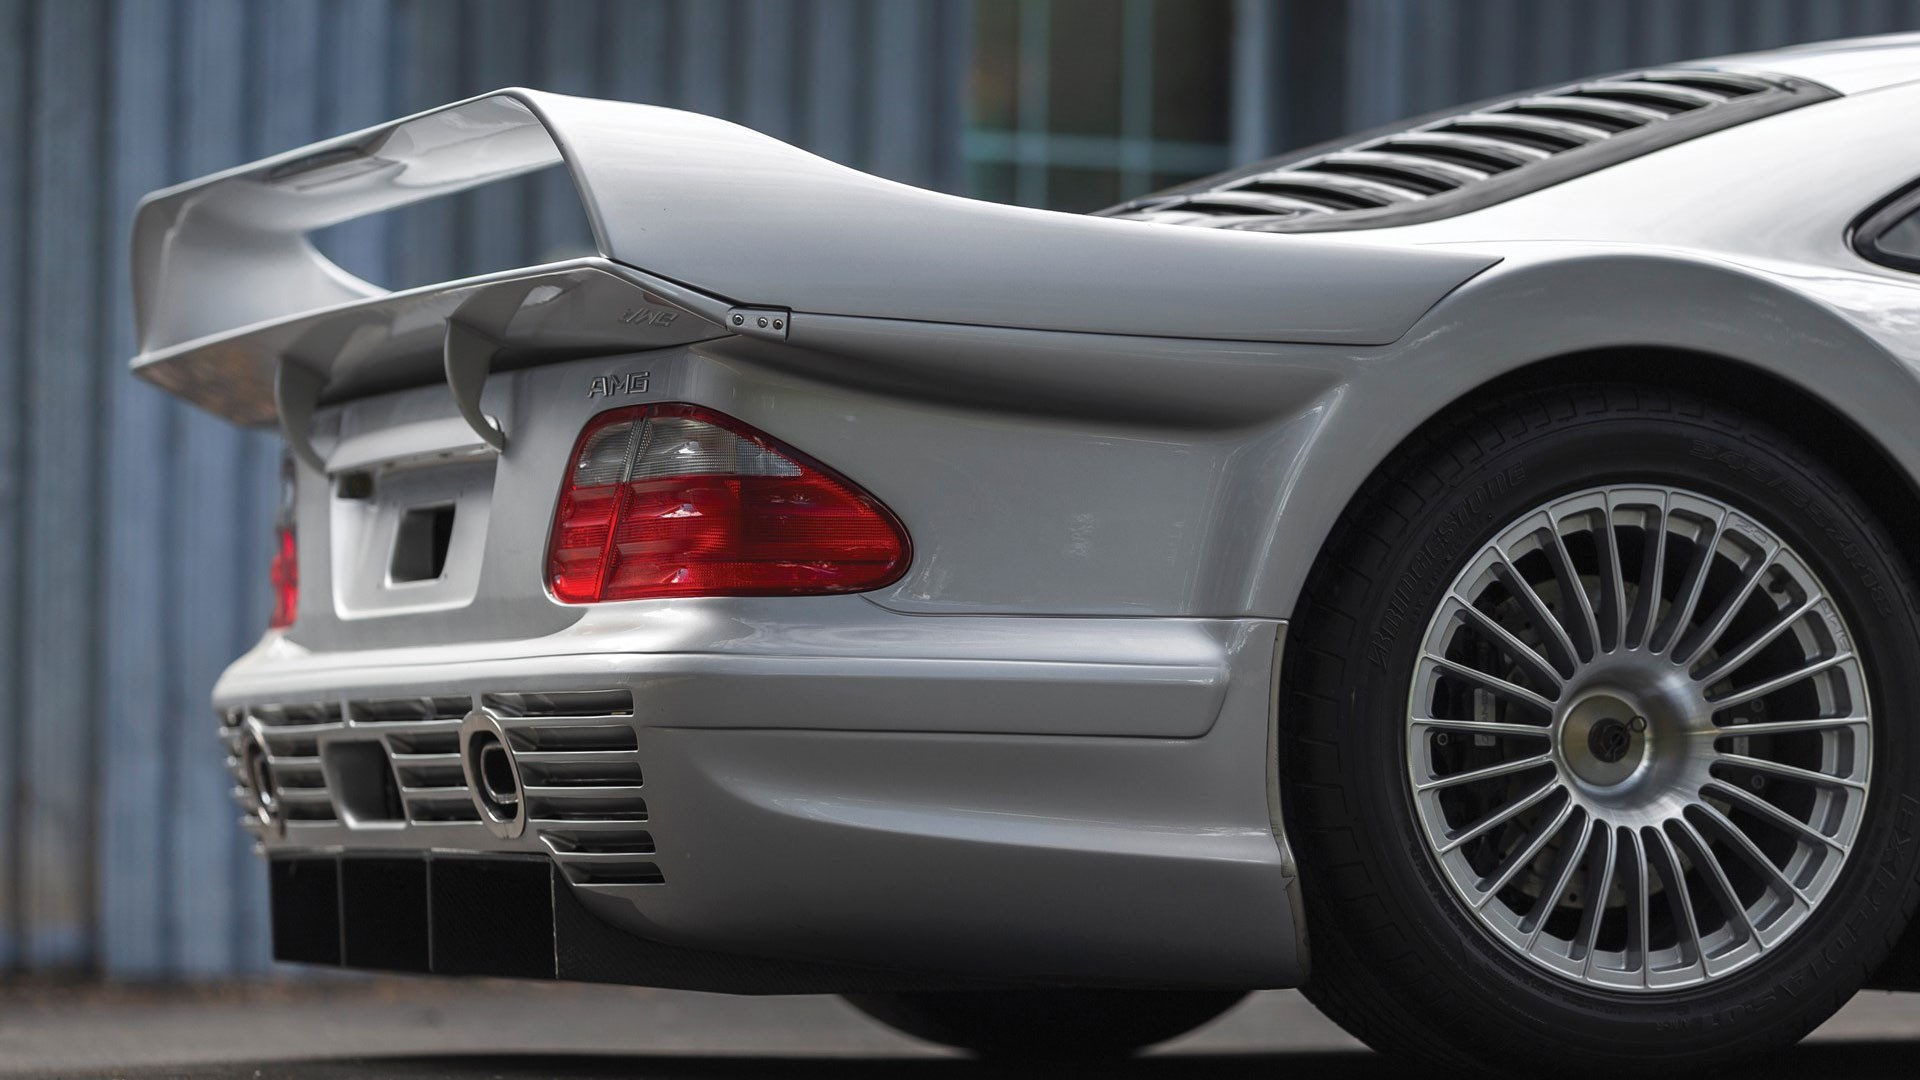 Car To Go >> This Stunning Mercedes Clk Gtr Is Being Sold At Pebble Beach Car